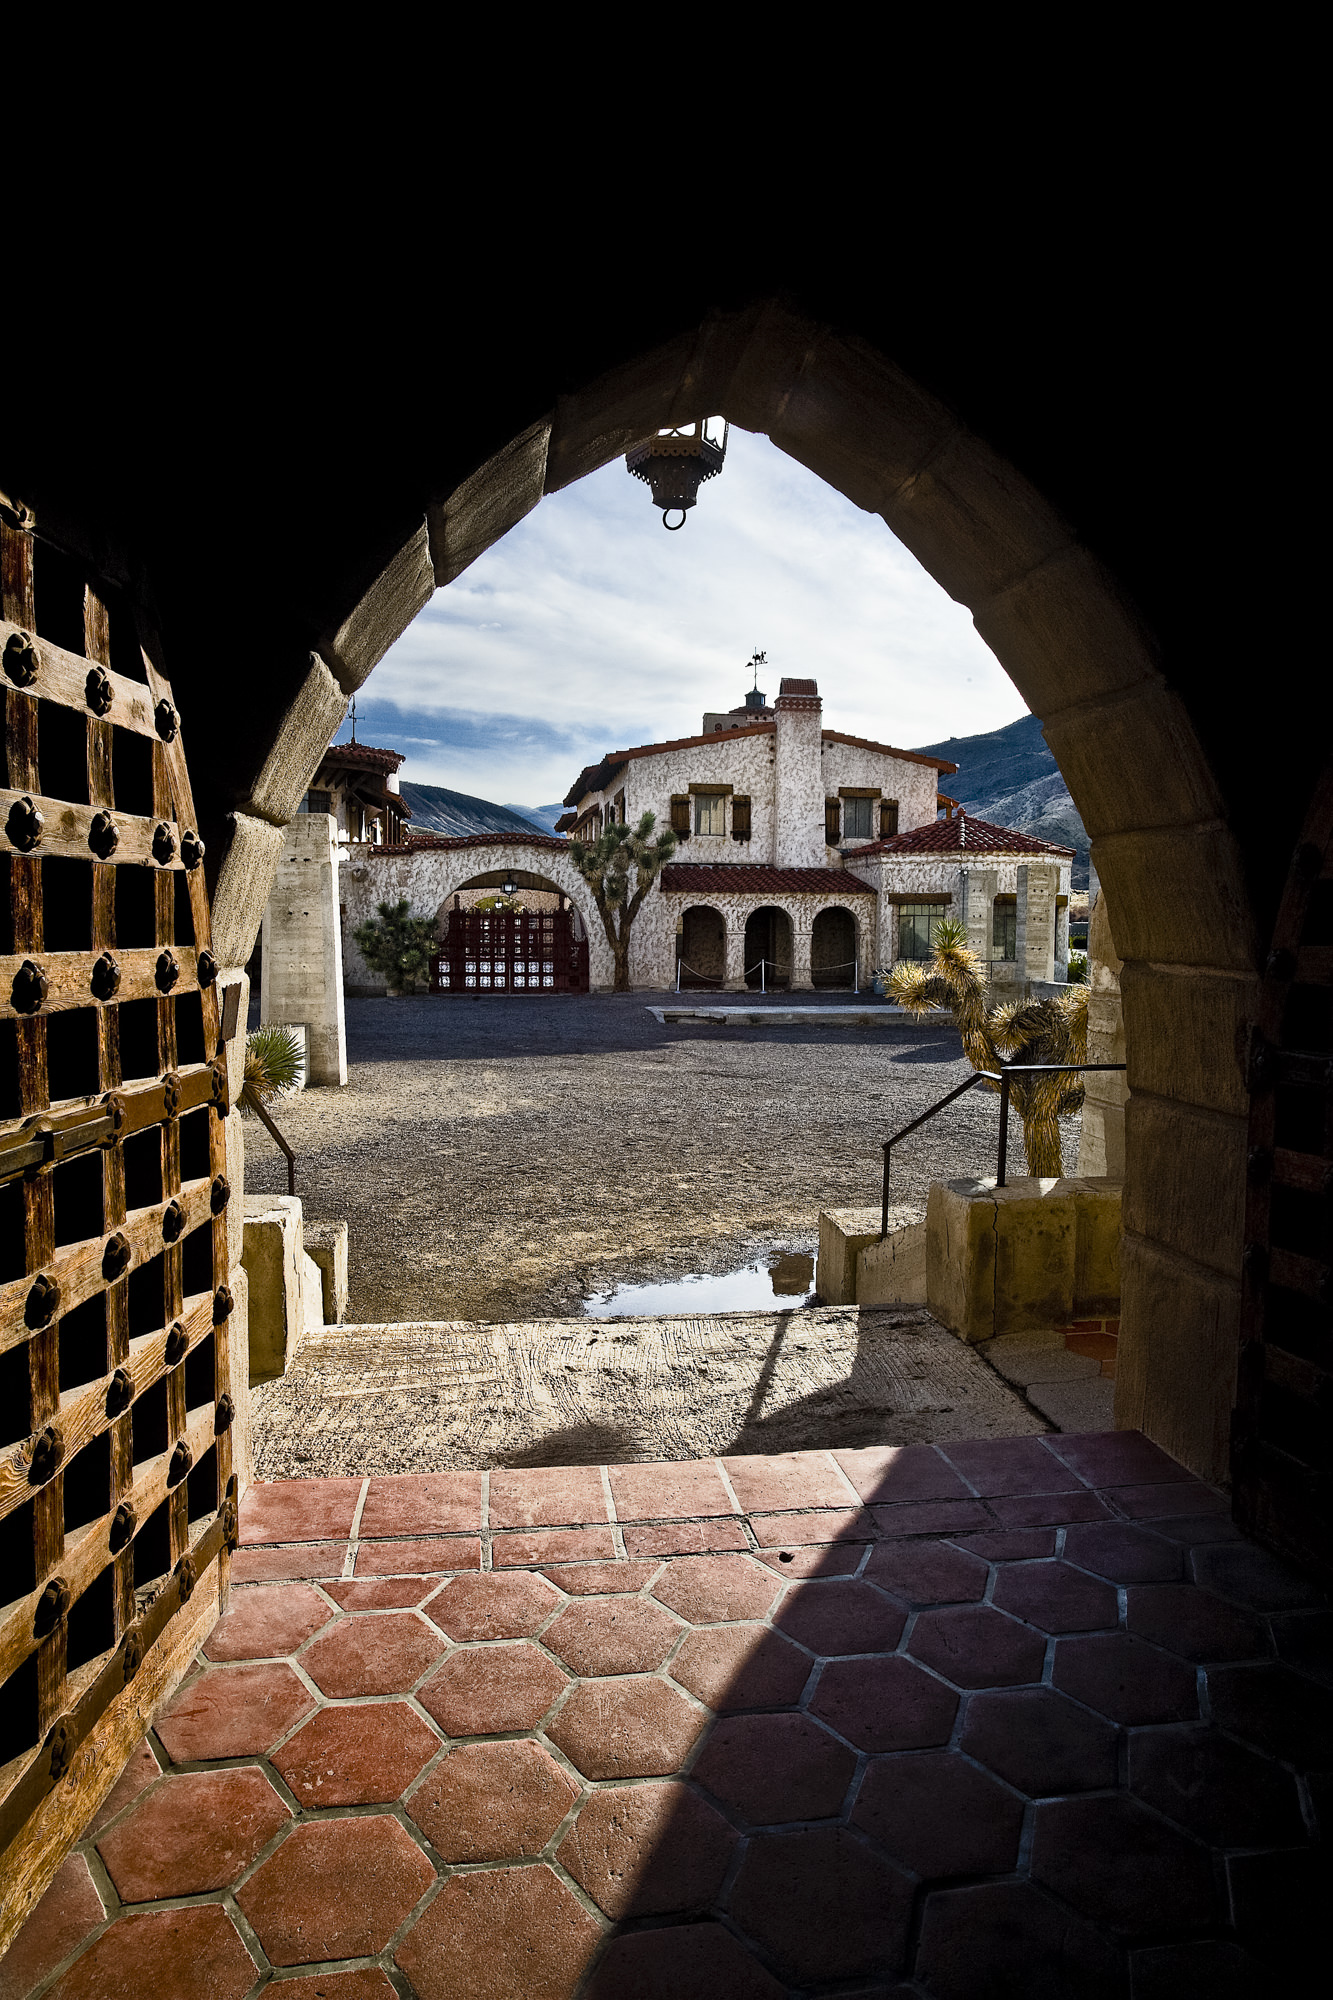 Scotty's Castle: There are many archways that make great framing elements.